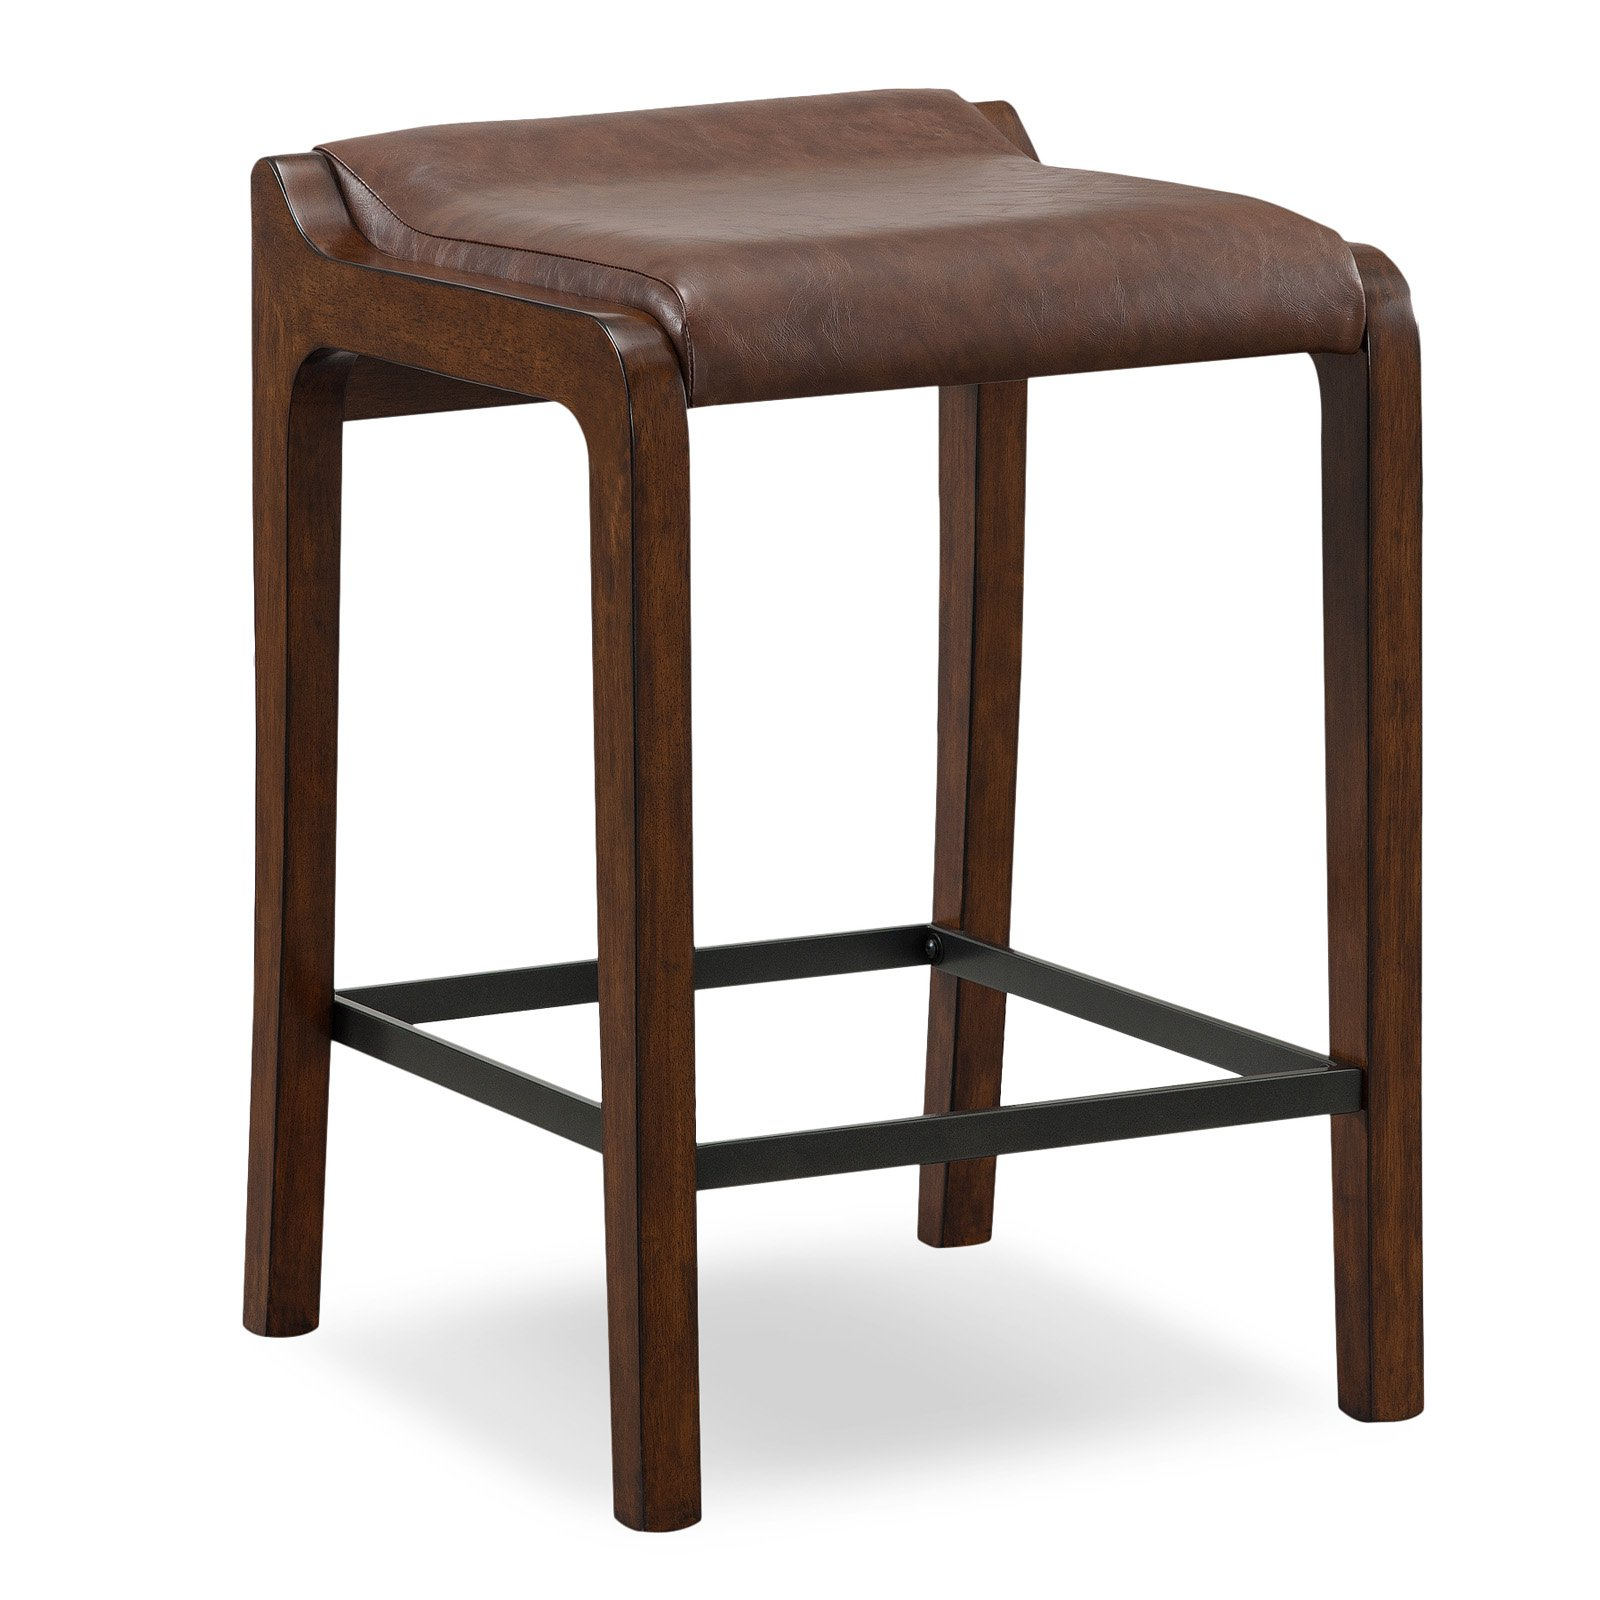 Leick Home 10116SN/SB Wood Fastback Counter Height Stool with Faux Leather Seat, Set of 2, Multiple colors